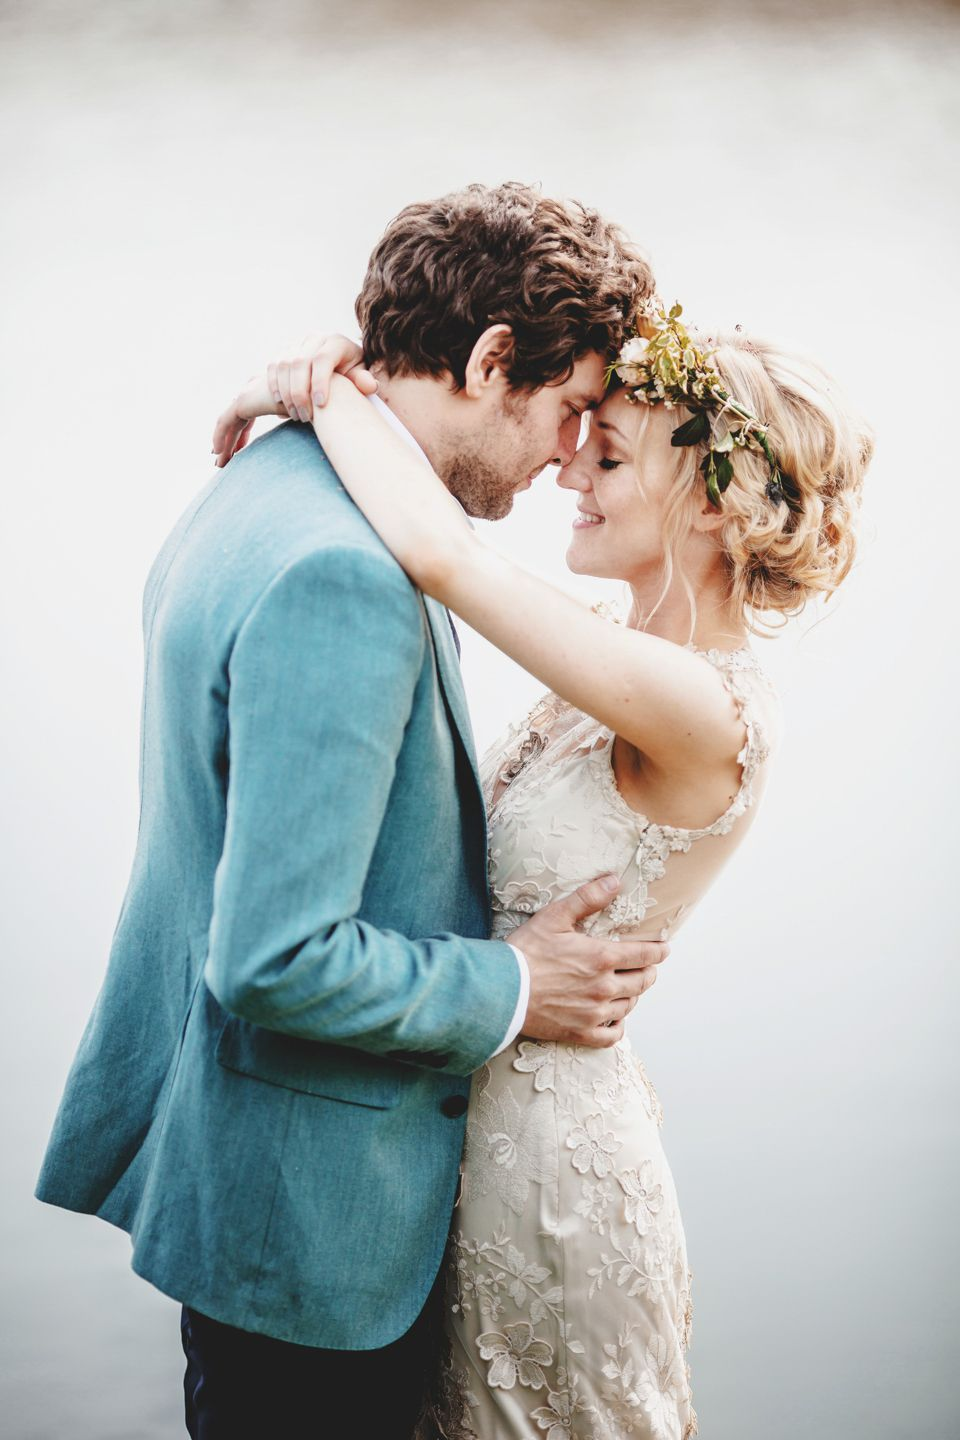 Claire Pettibone and Flowers In Her Hair – A Spectacular Outdoor ...